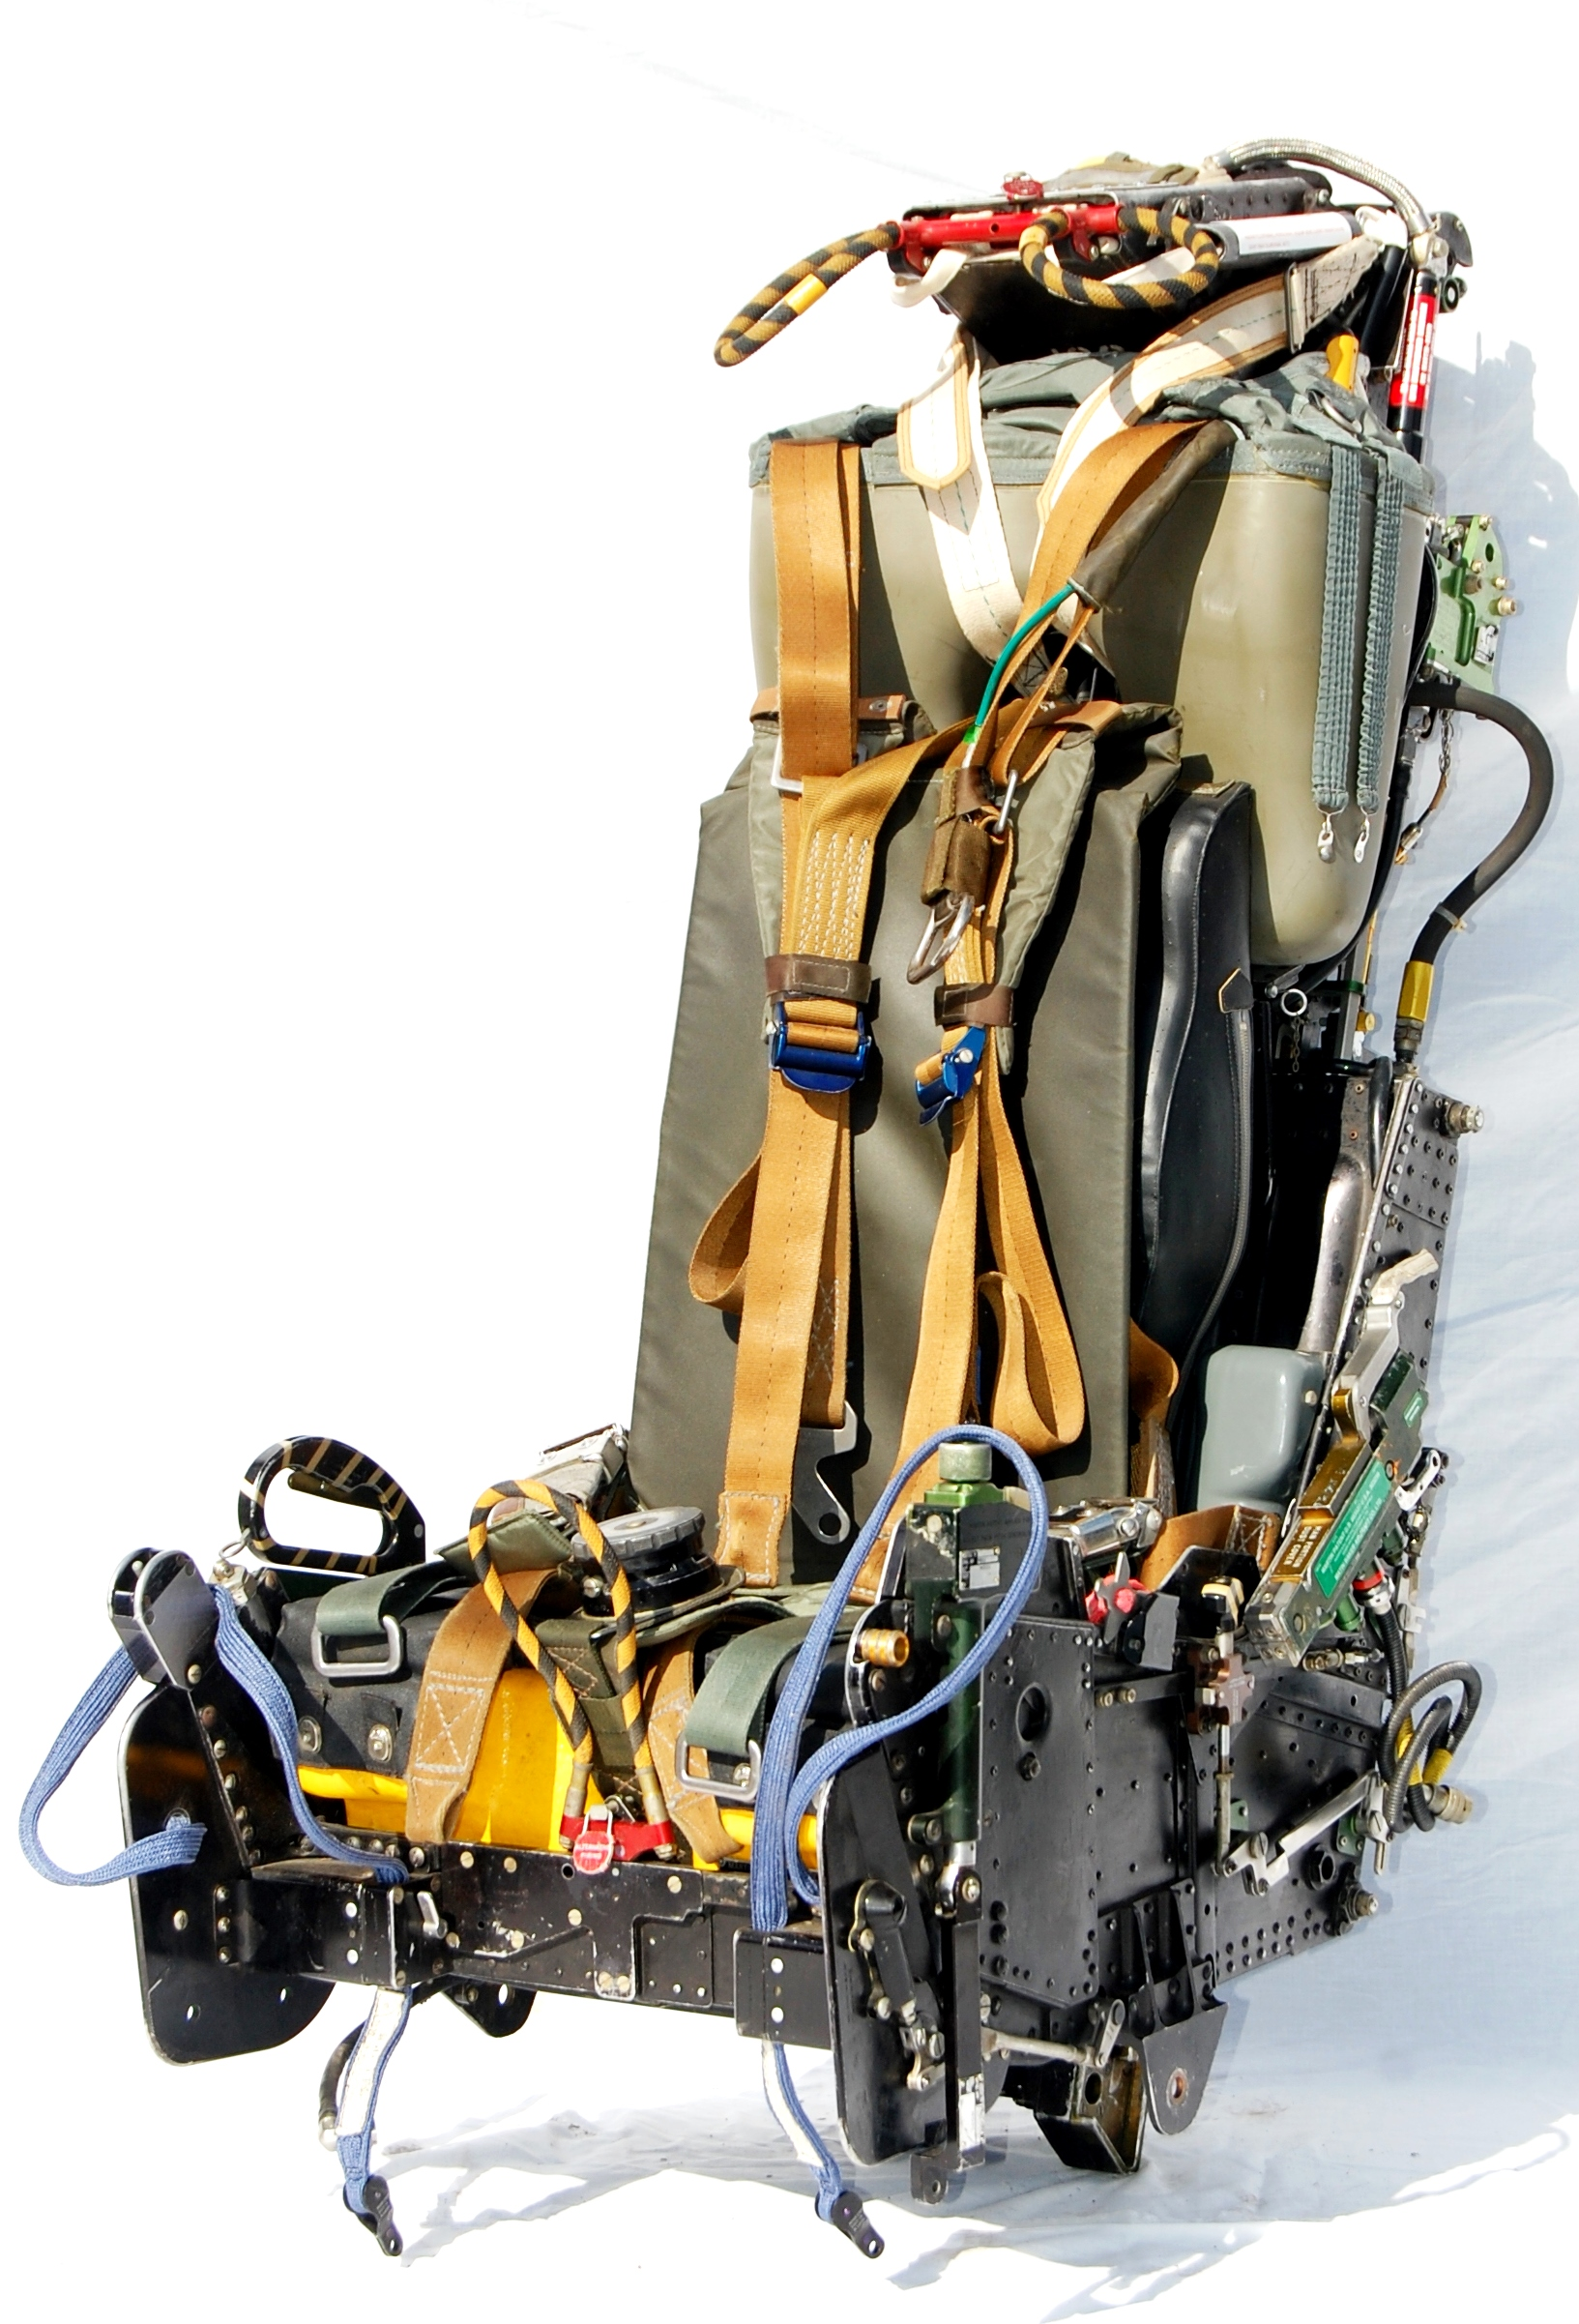 F4 Phantom Ejection Seat